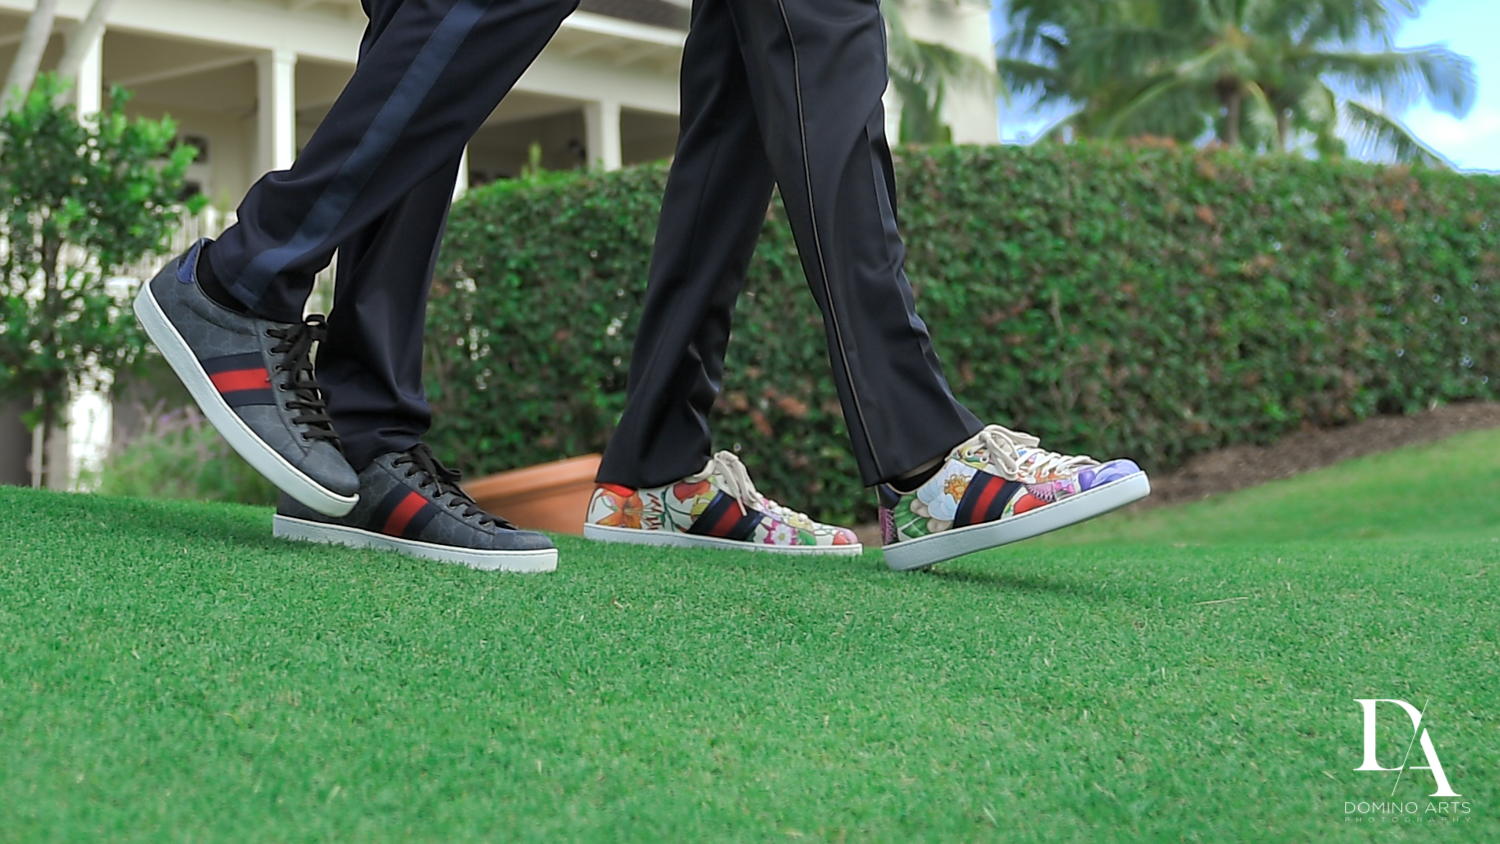 Shoes details at Luxury B'Nai Mitzvah at Woodfield Country Club by Domino Arts Photography